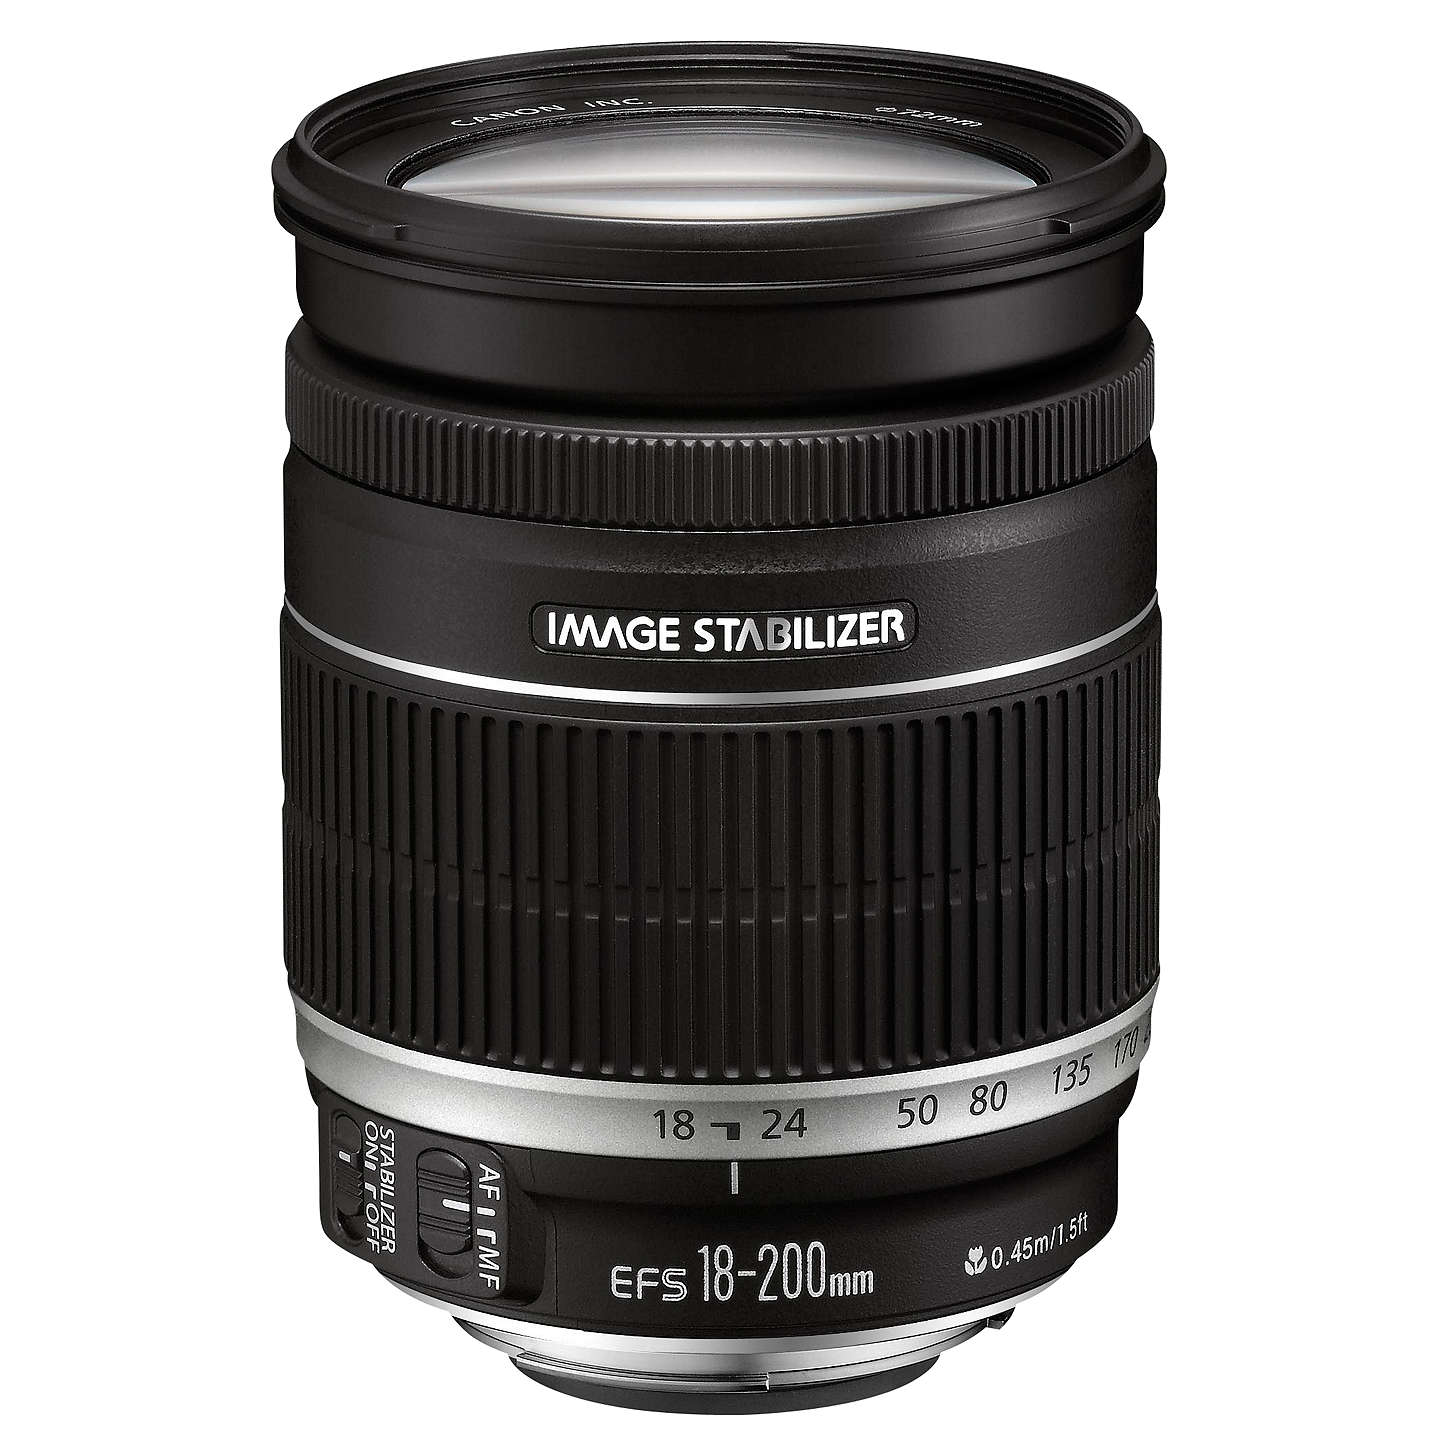 BuyCanon EF-S 18-200mm f/3.5-5.6 IS Telephoto Lens Online at johnlewis.com